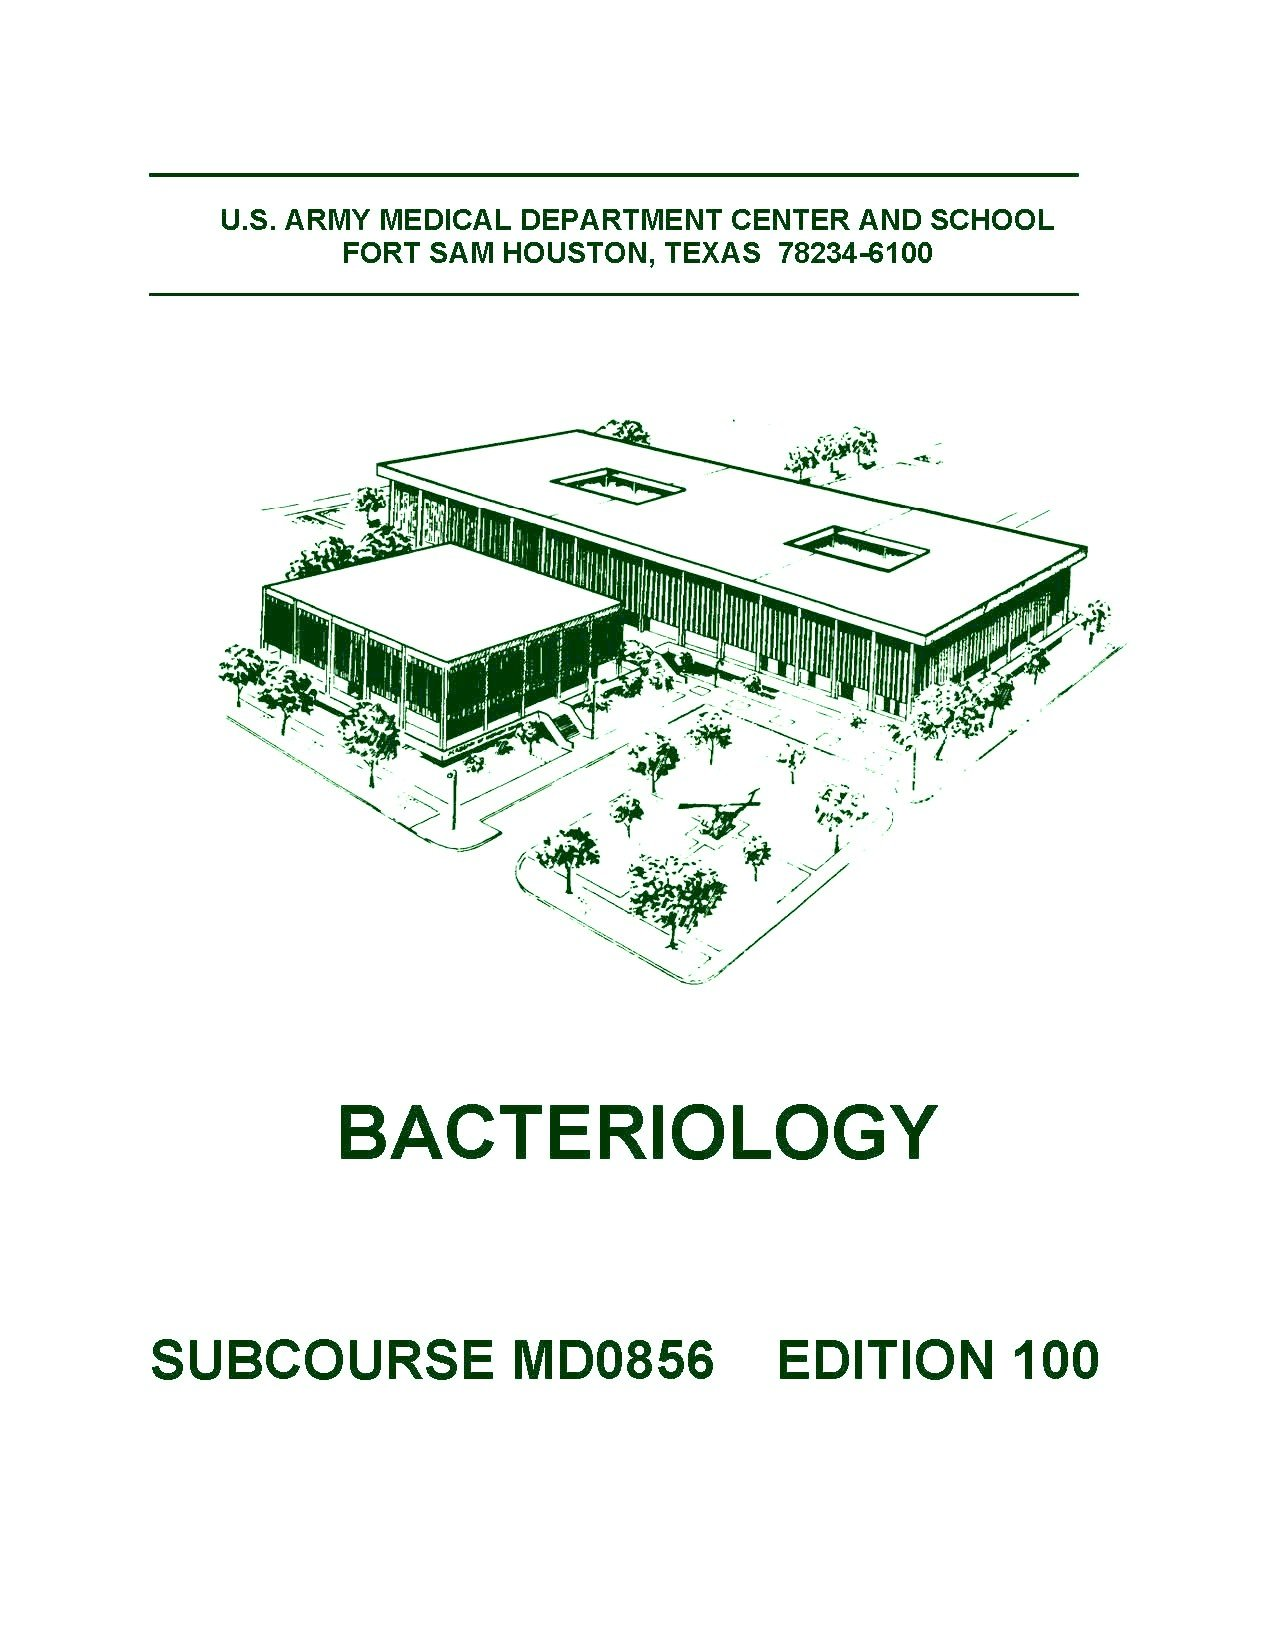 US Army Medical Bacteriology SUBCOURSE MD0856 EDITION 100: U.S. ARMY MEDICAL  DEPARTMENT CENTER AND SCHOOL: Amazon.com: Books